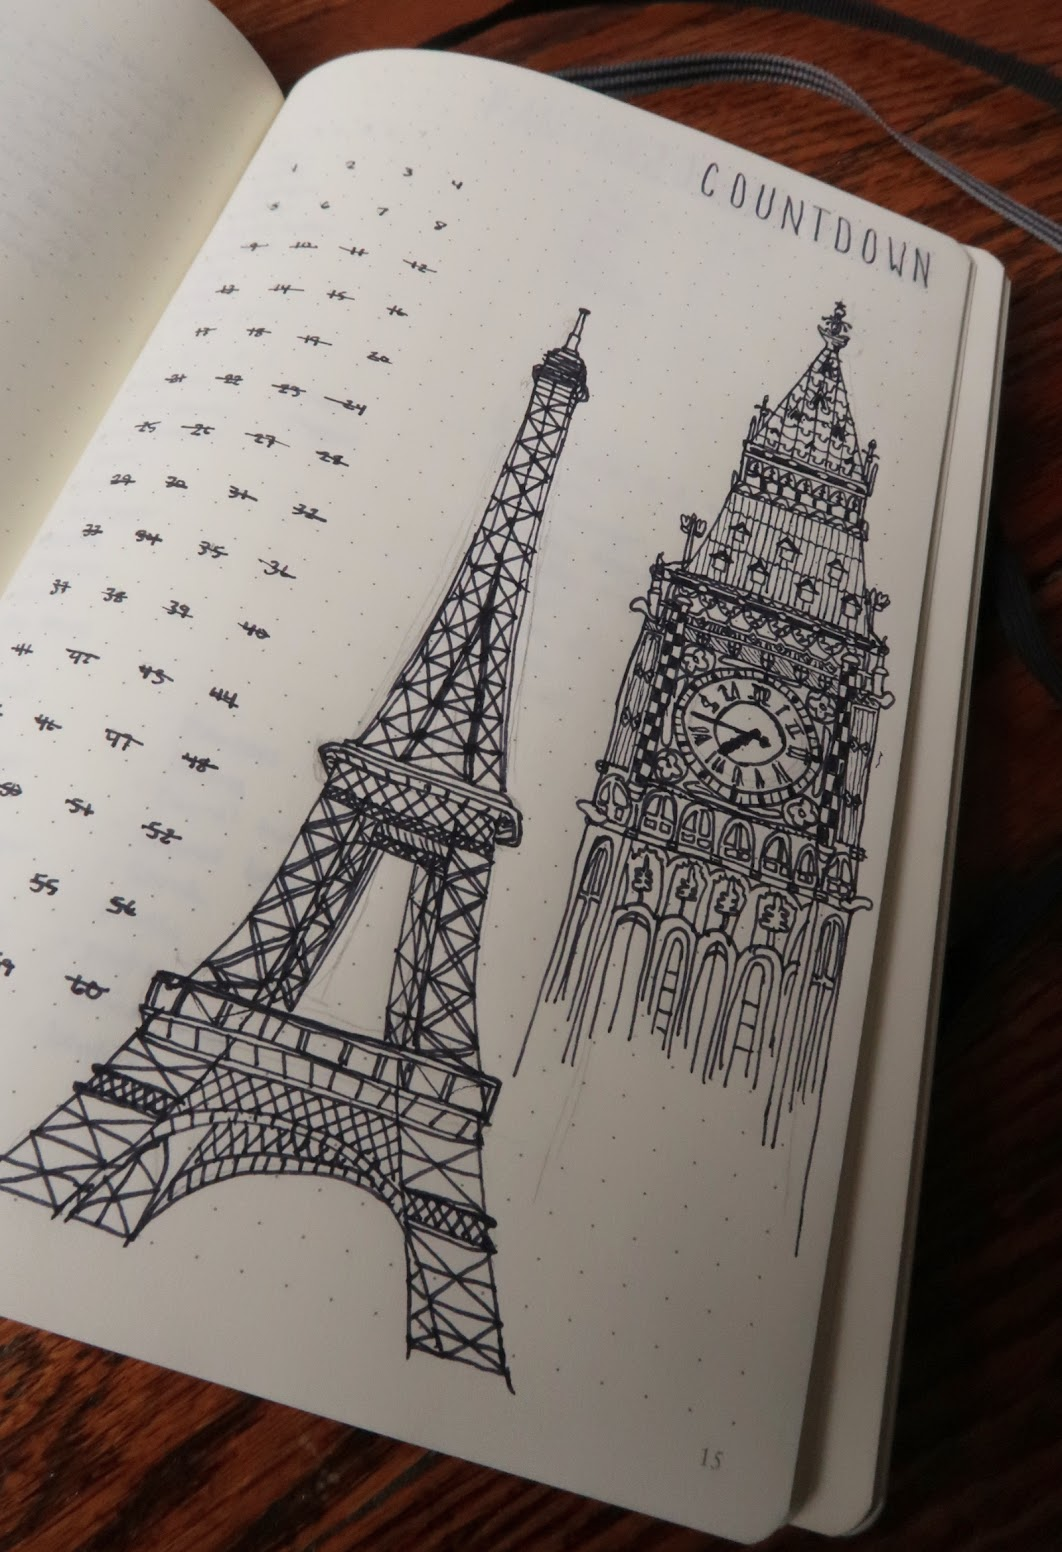 bullet journal trip travel countdown eiffel tower big ben clock sketch drawing pen line plan